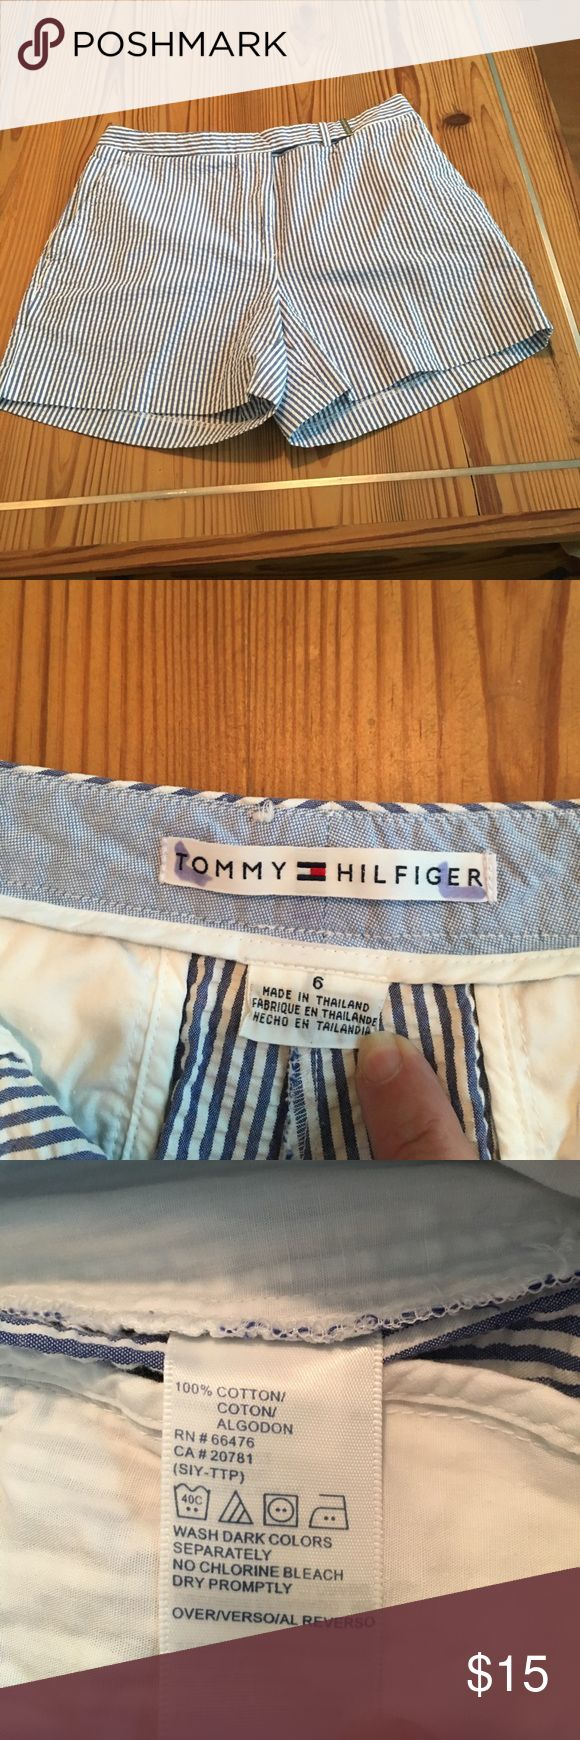 Tommy Hilfiger stripe shorts. Size 6(runs small) QAdorable Tommy Hilfiger seersucker shorts.  Label says size 6, fits like size 2.  Waist measure 14 1/2. Great condition. No stains, tears or visible wear. Label marked with initials. See photo. Tommy Hilfiger Shorts